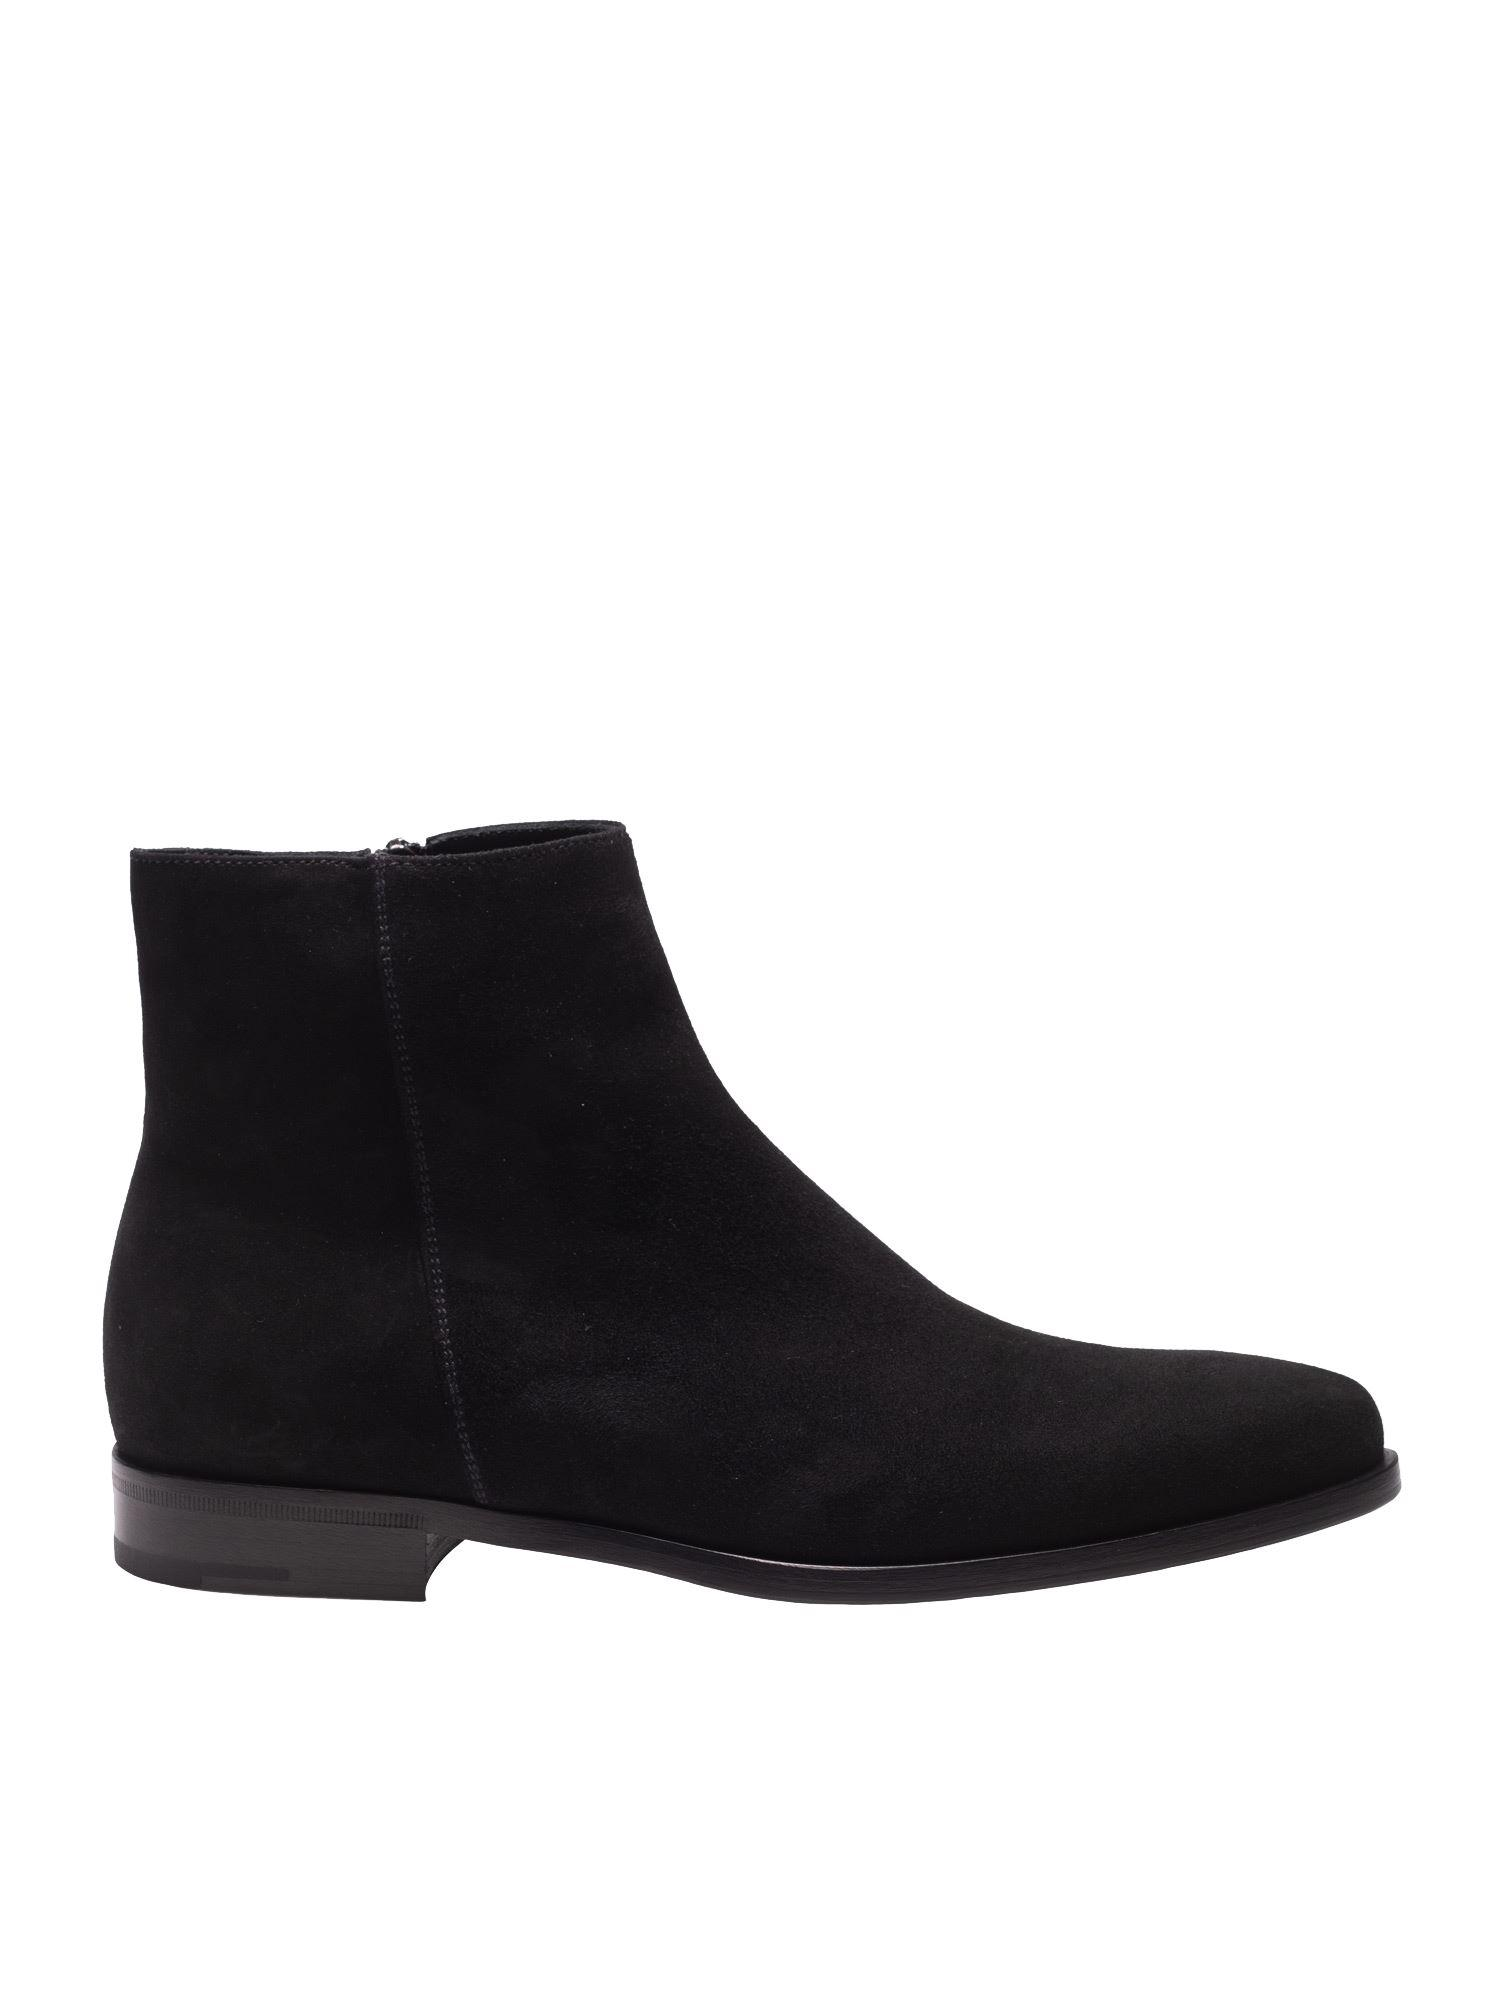 988b9538b70c Prada Black Suede Ankle Boots in Black for Men - Save 34% - Lyst